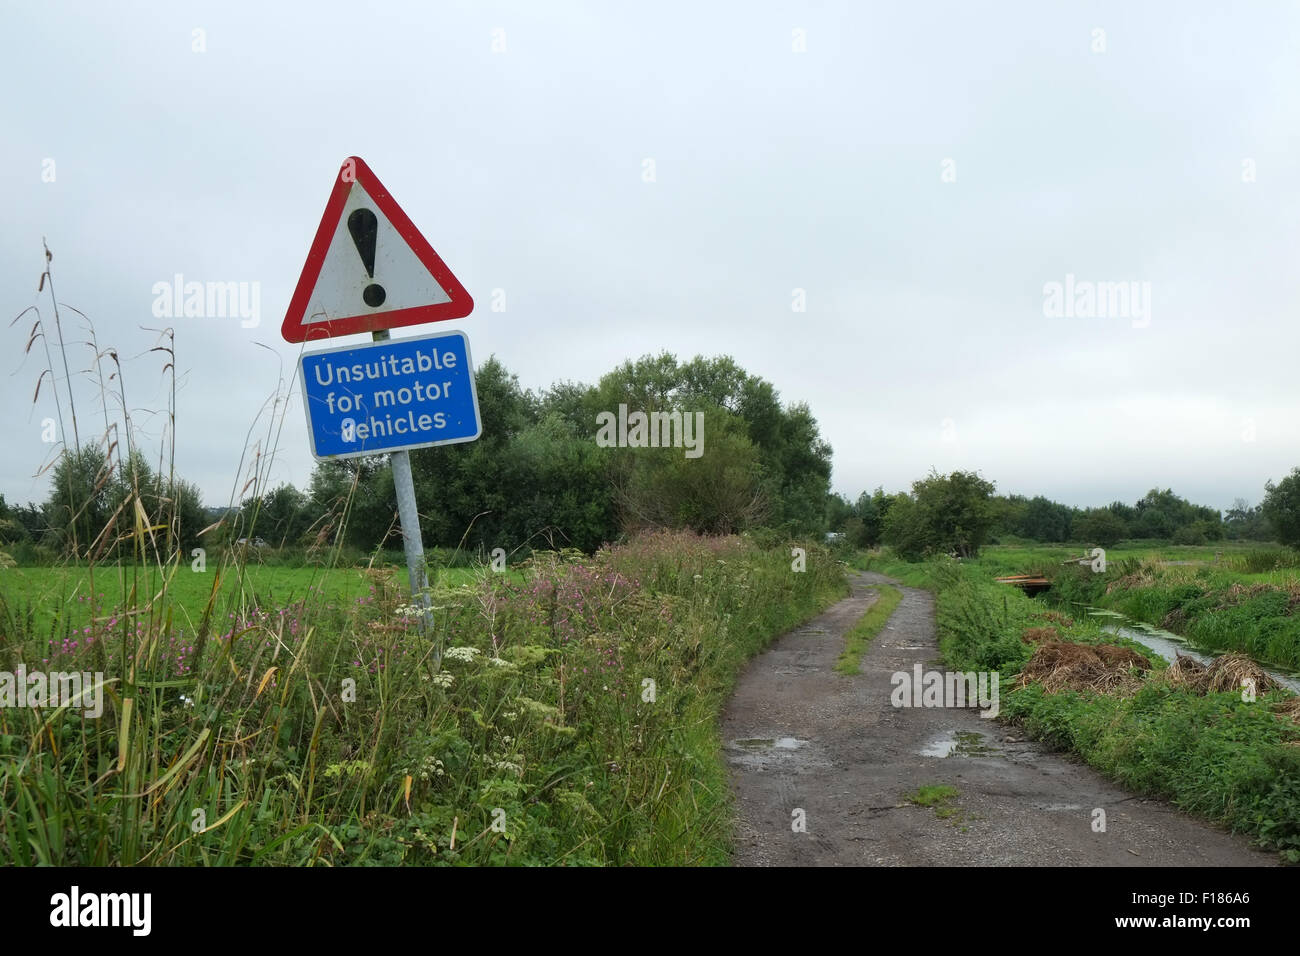 Unsuitable road sign on a rural road in Somerset, England. UK GB. August 2015 - Stock Image